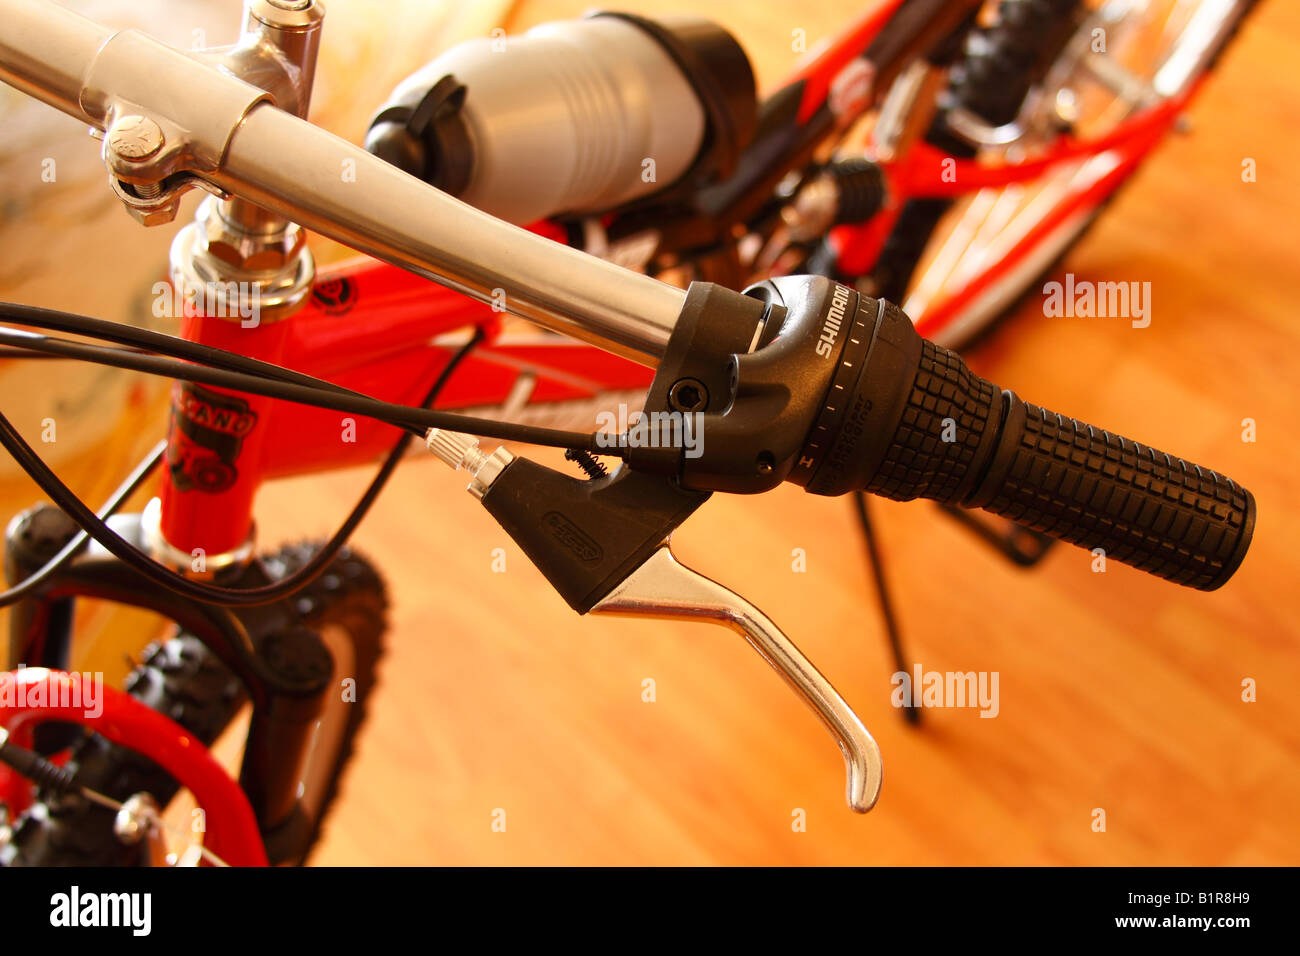 Shimano Geared Bicycle, close up - Stock Image